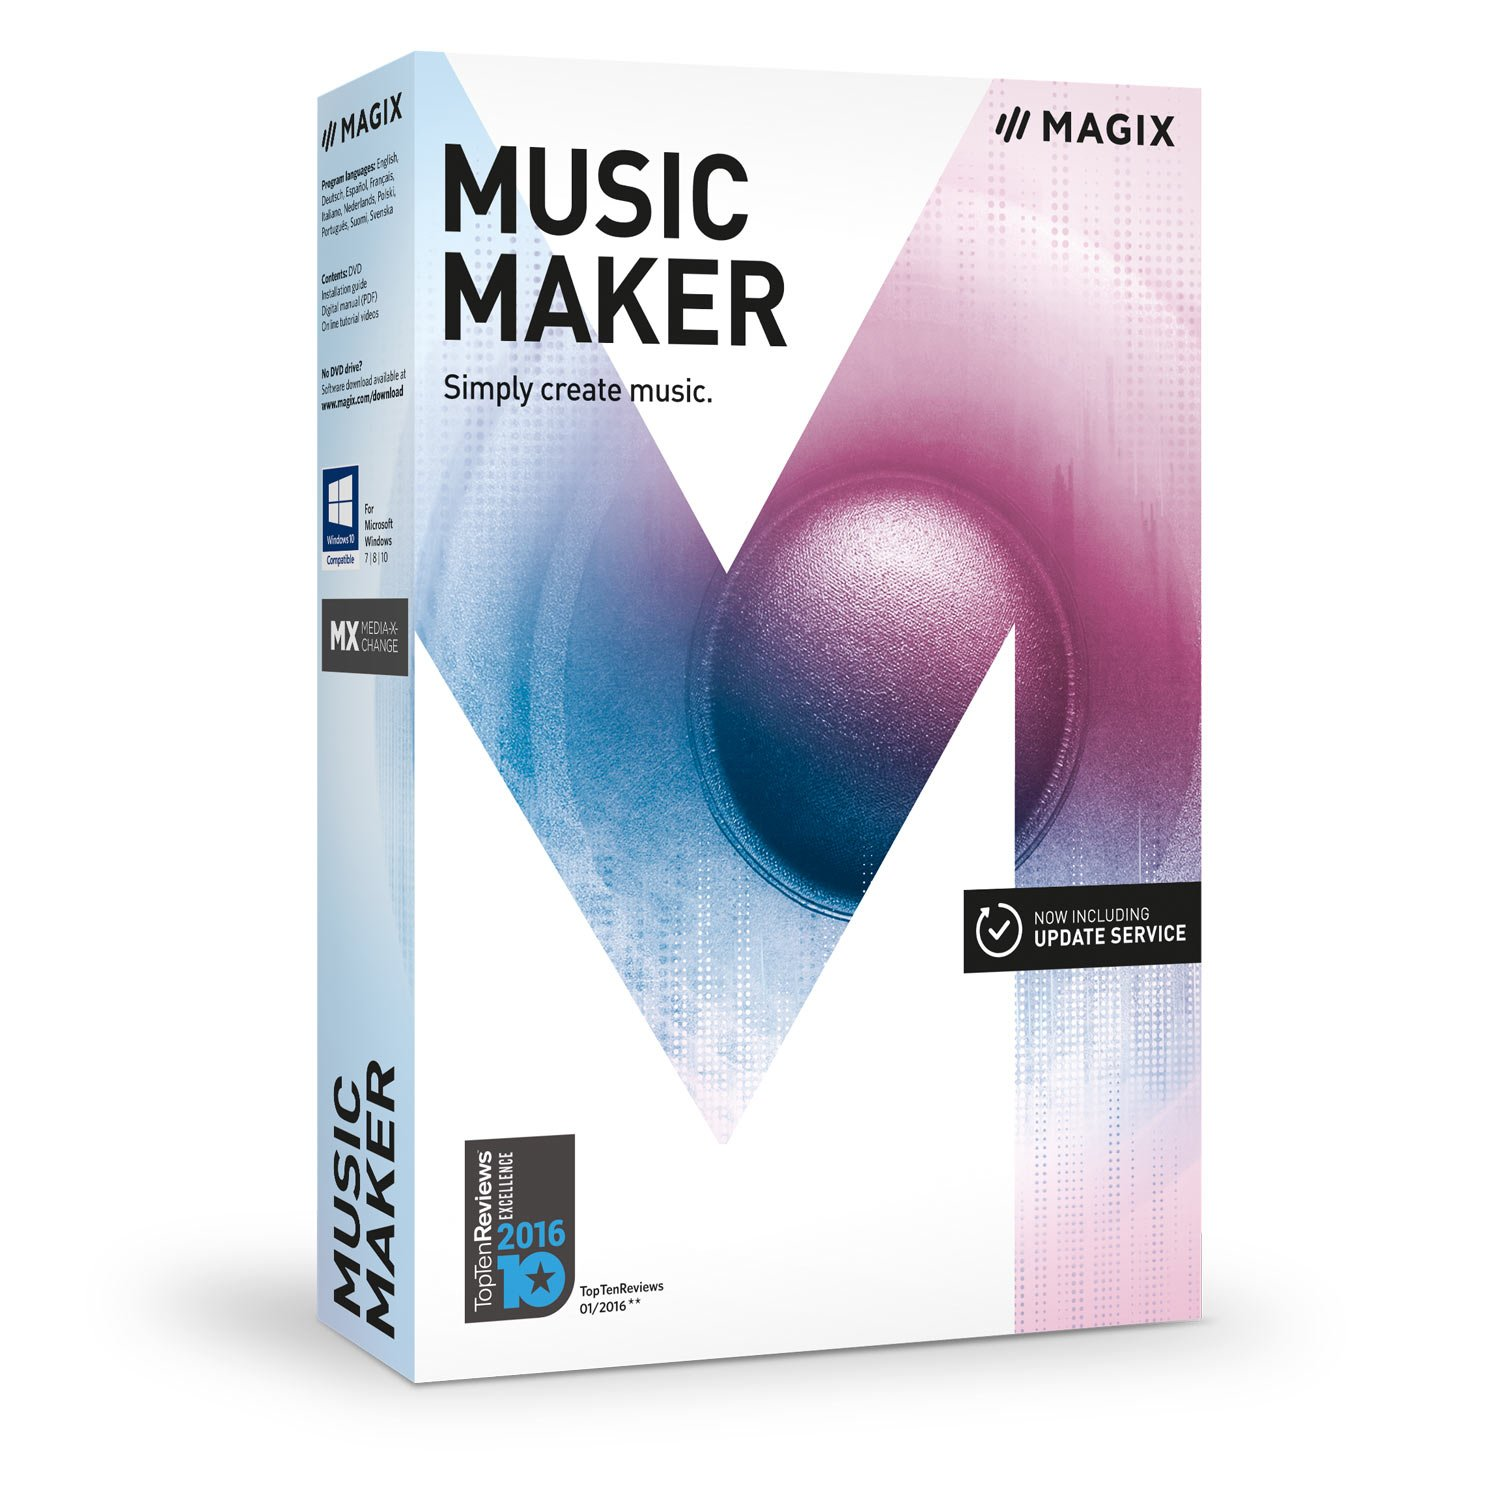 MAGIX Music Maker - 2017 Plus Edition - Make your own music the easy way by MAGIX